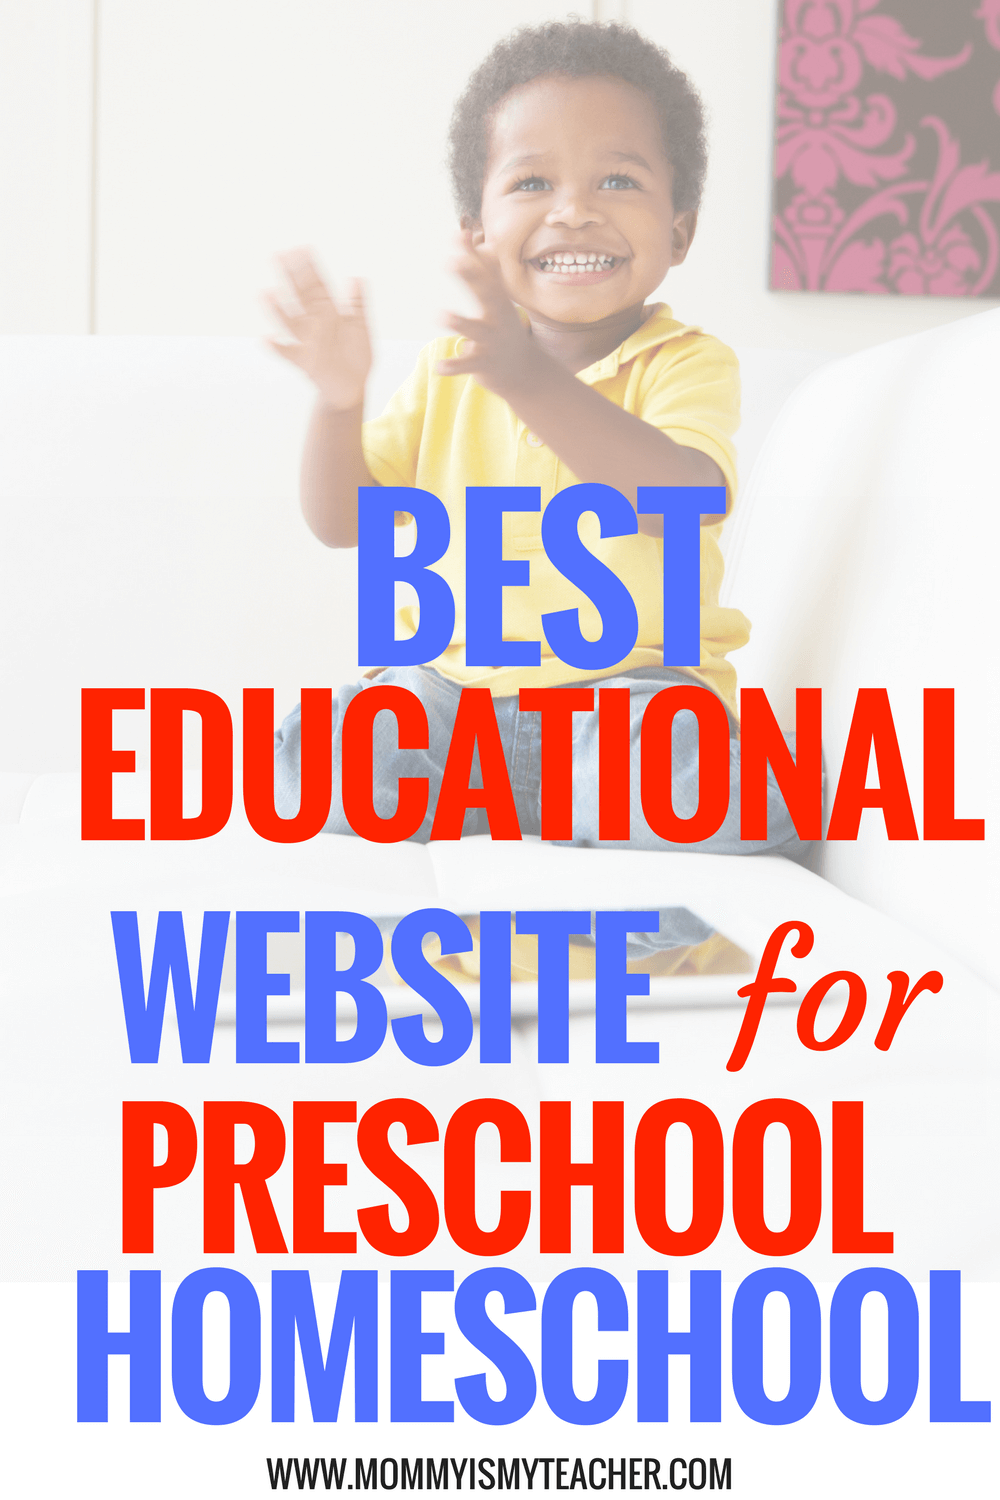 Wow, I love this educational website for preschool homeschool! It is perfect for homeschool preschool and preschool activities at home!